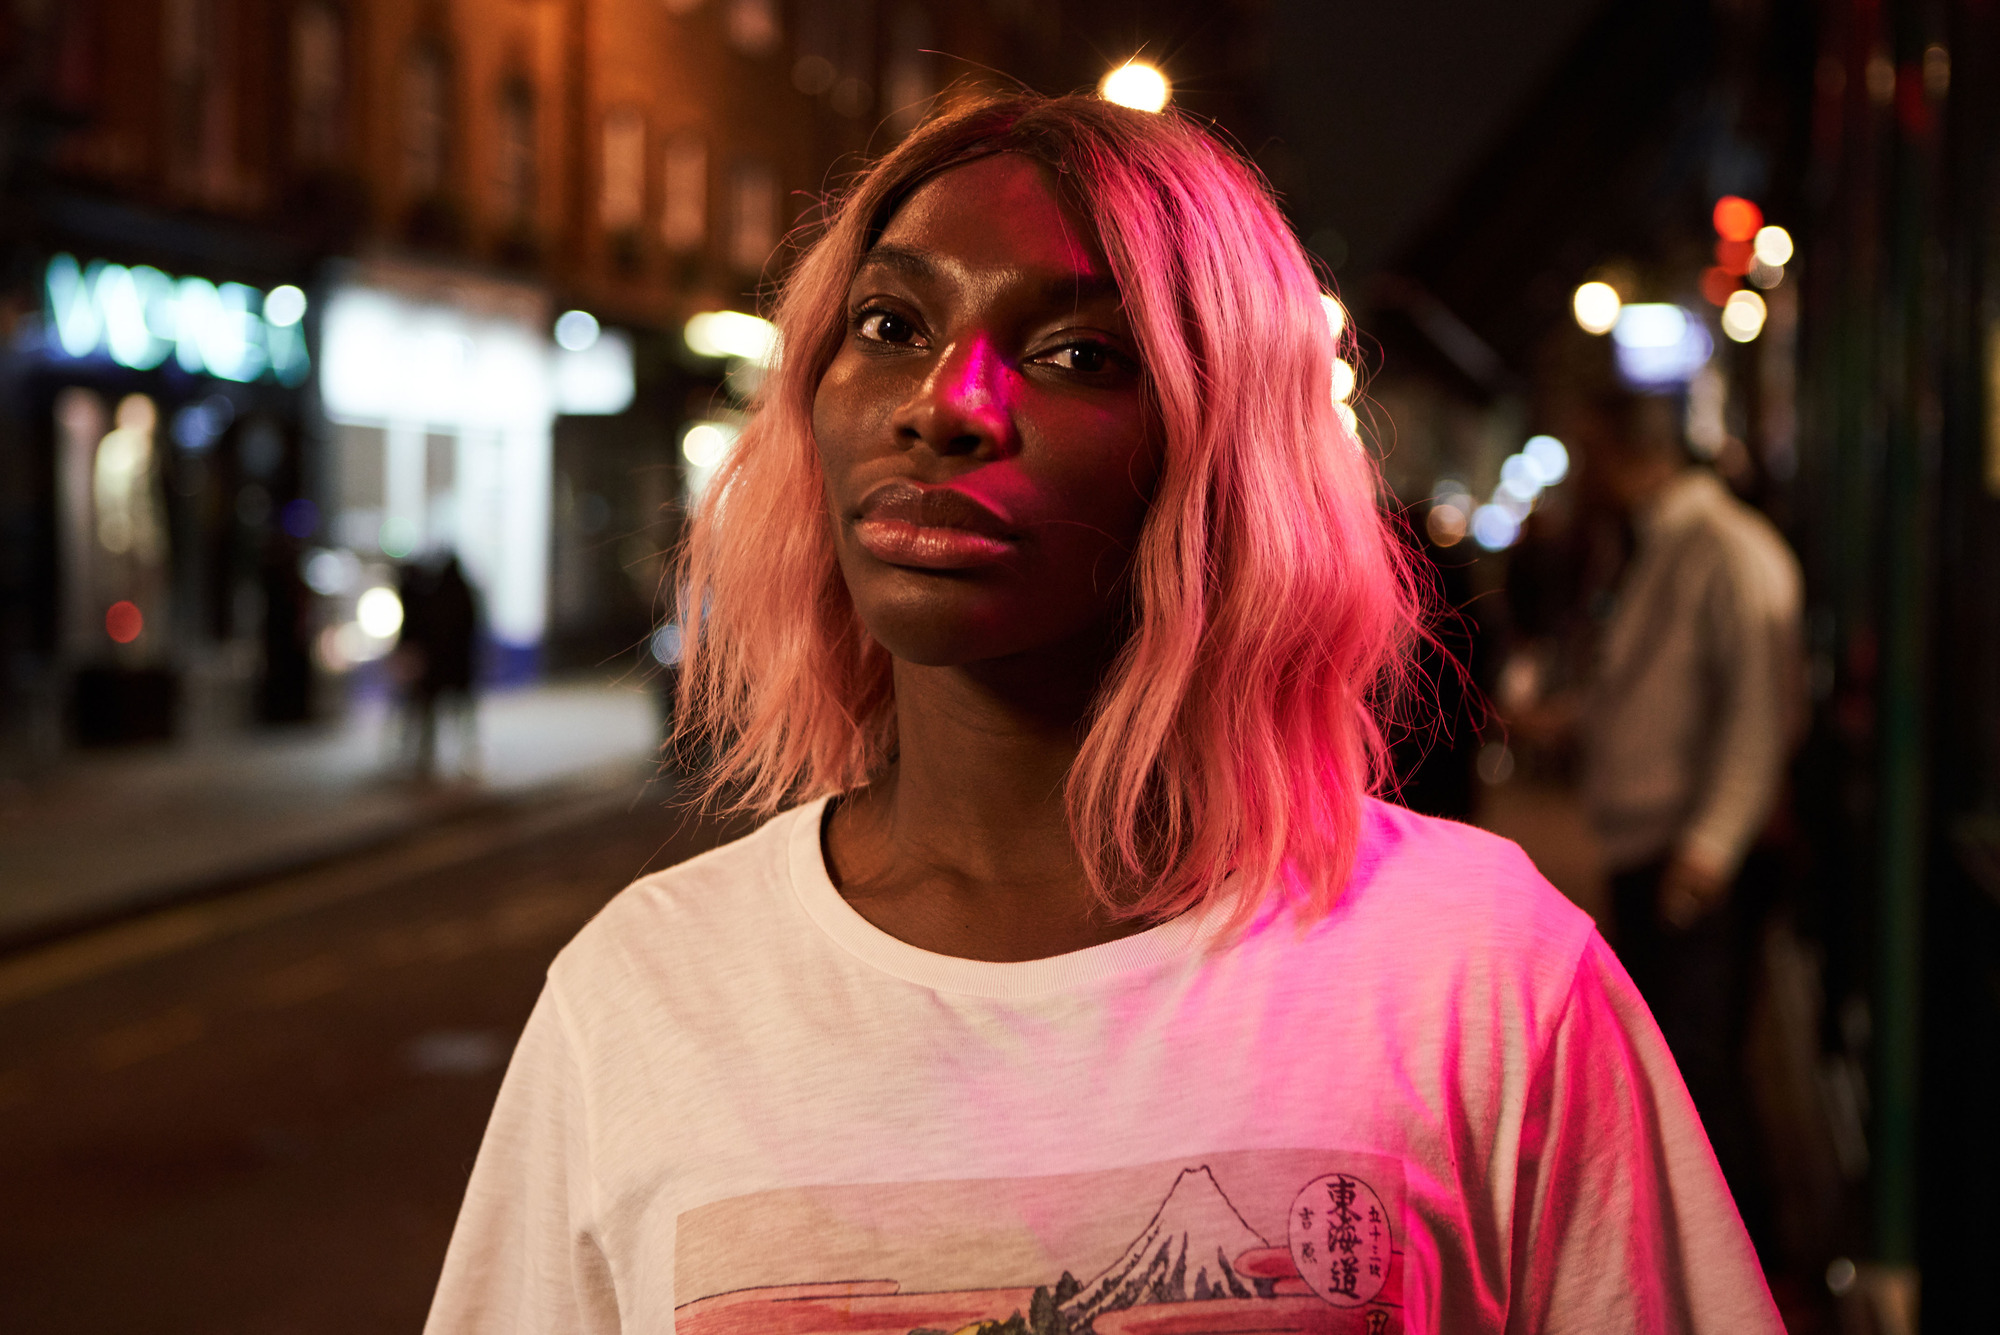 michaela coel in I May Destroy You, sporting pink hair